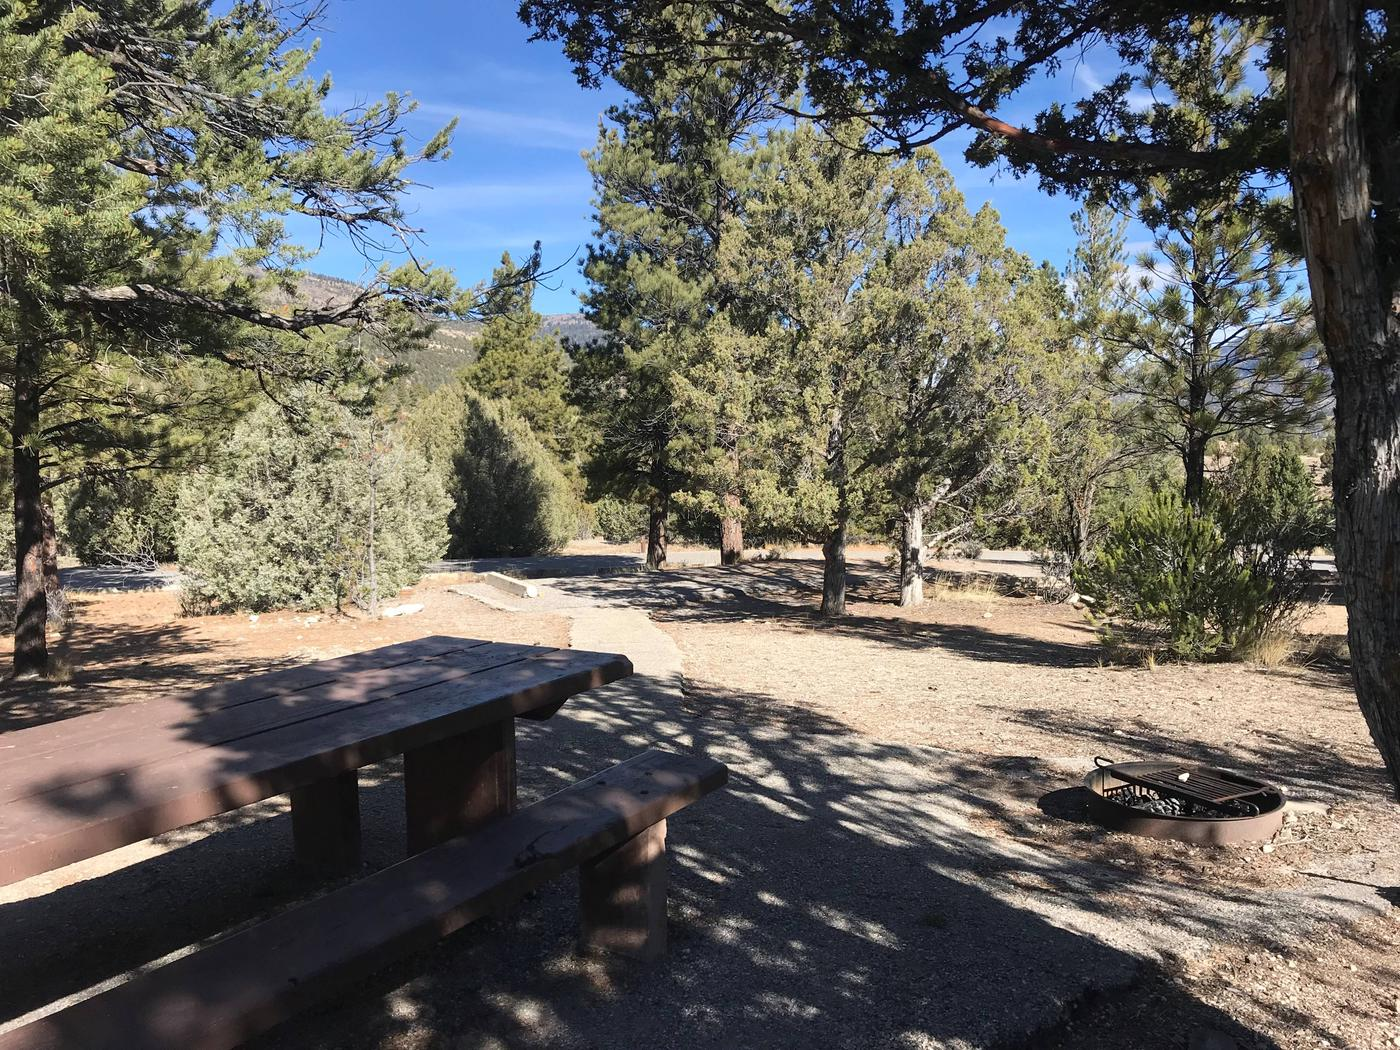 Joes Valley Campground Site 11